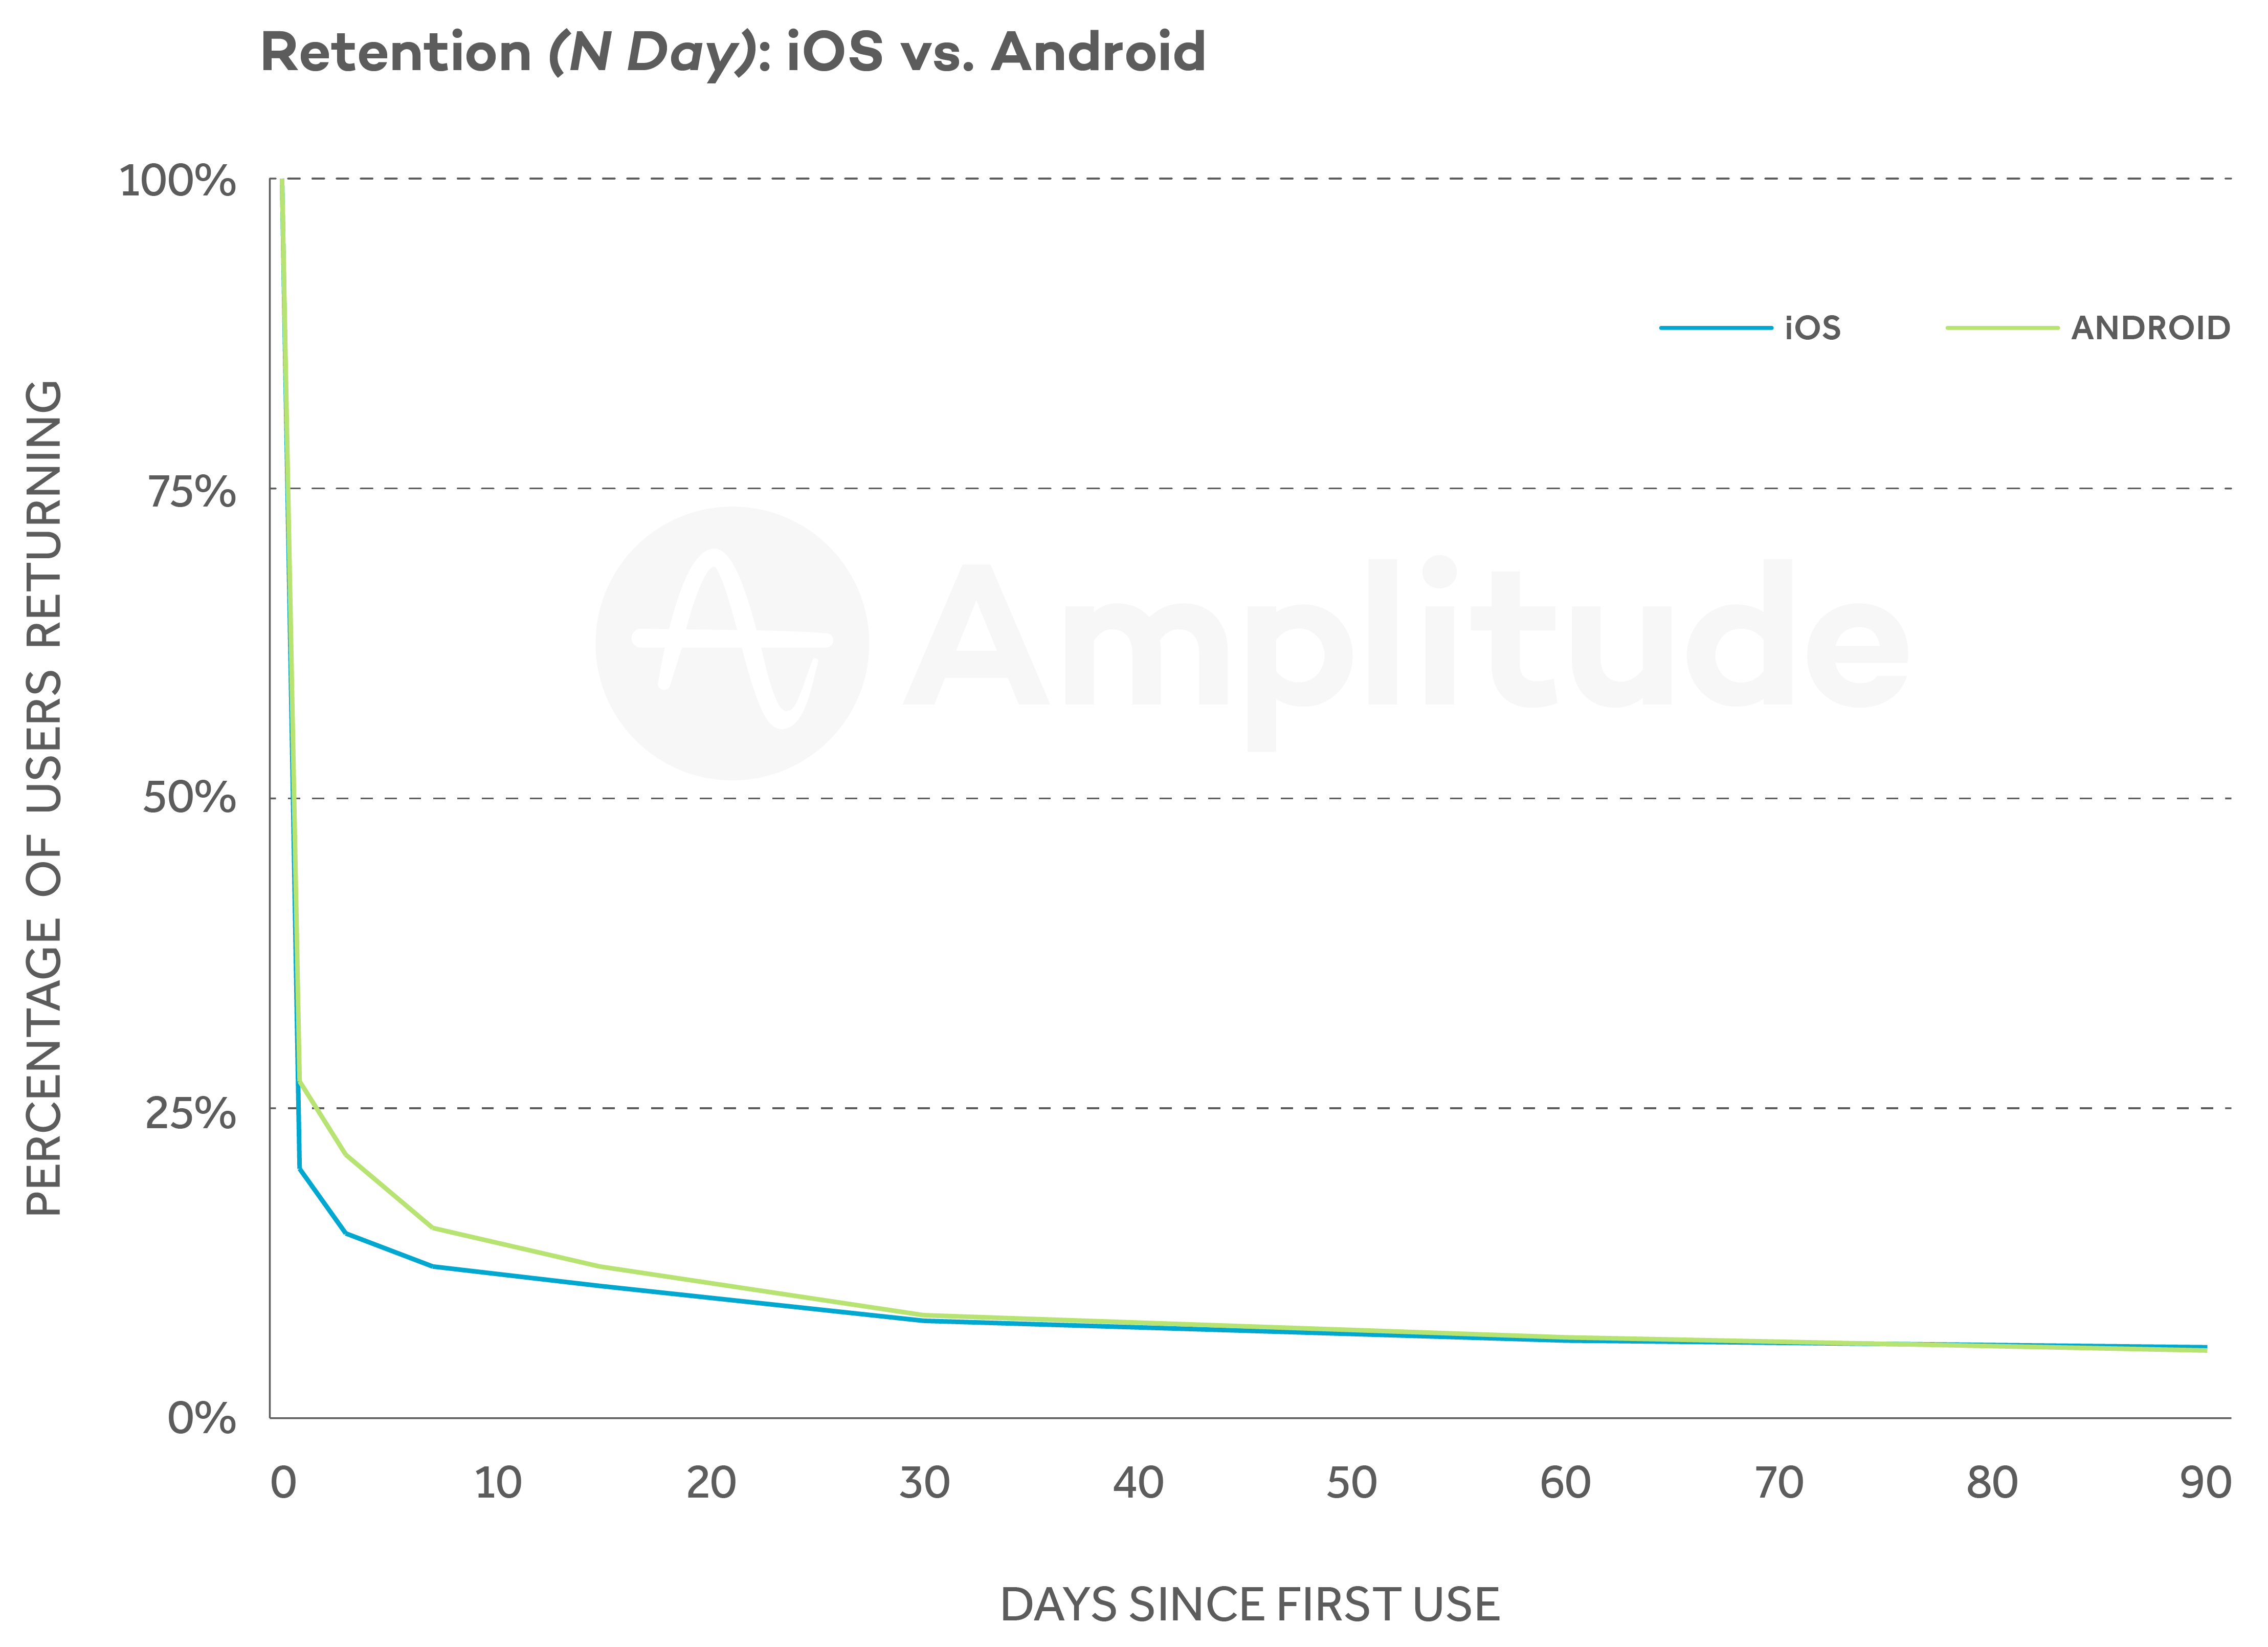 N-day retention of iOS vs Android